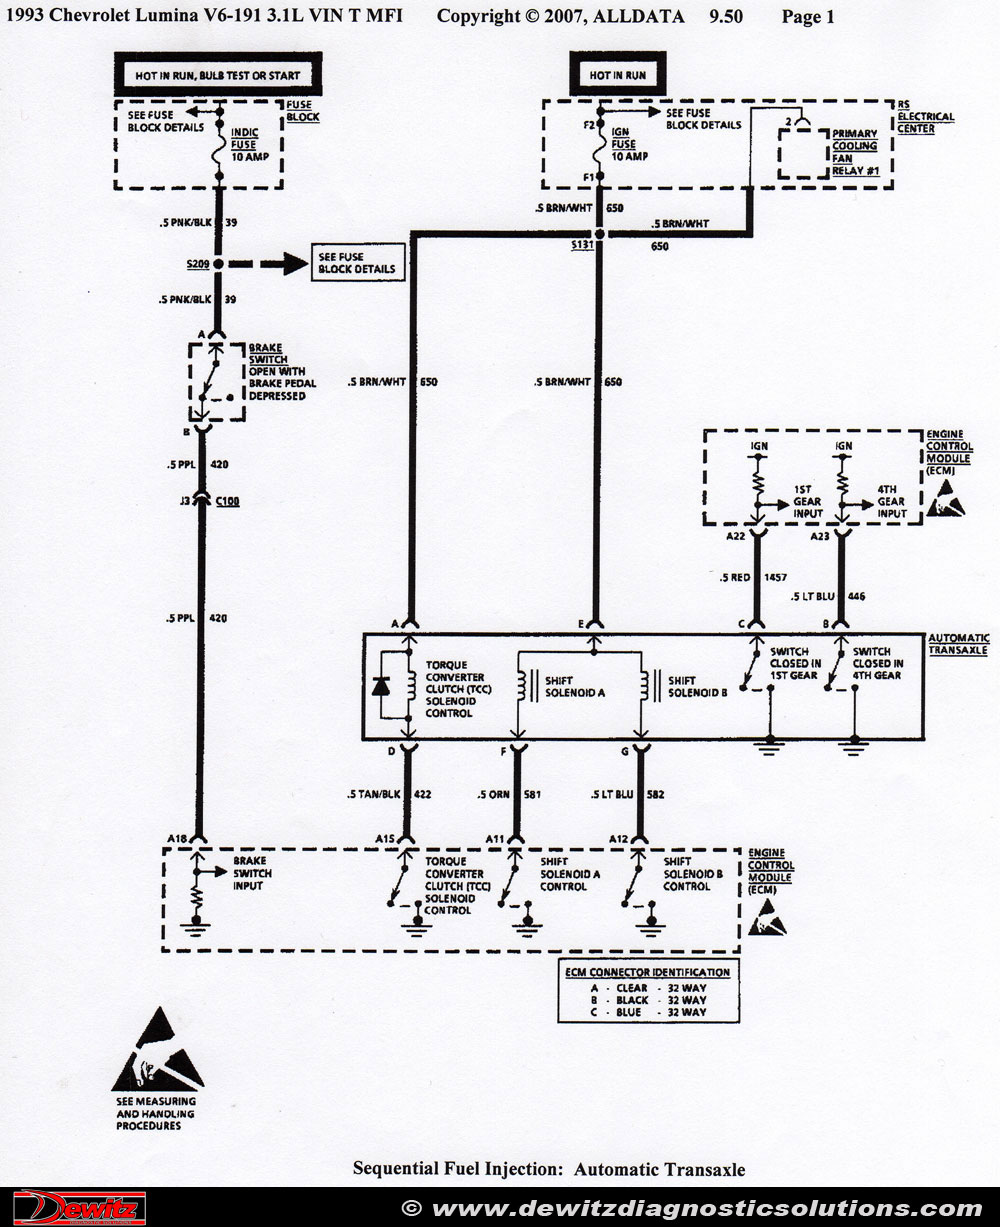 Gmc Transmission Wiring Diagram Archive Of Automotive Speedometer Wire 94 4t60e Blog About Diagrams Rh Clares Driving Co Uk